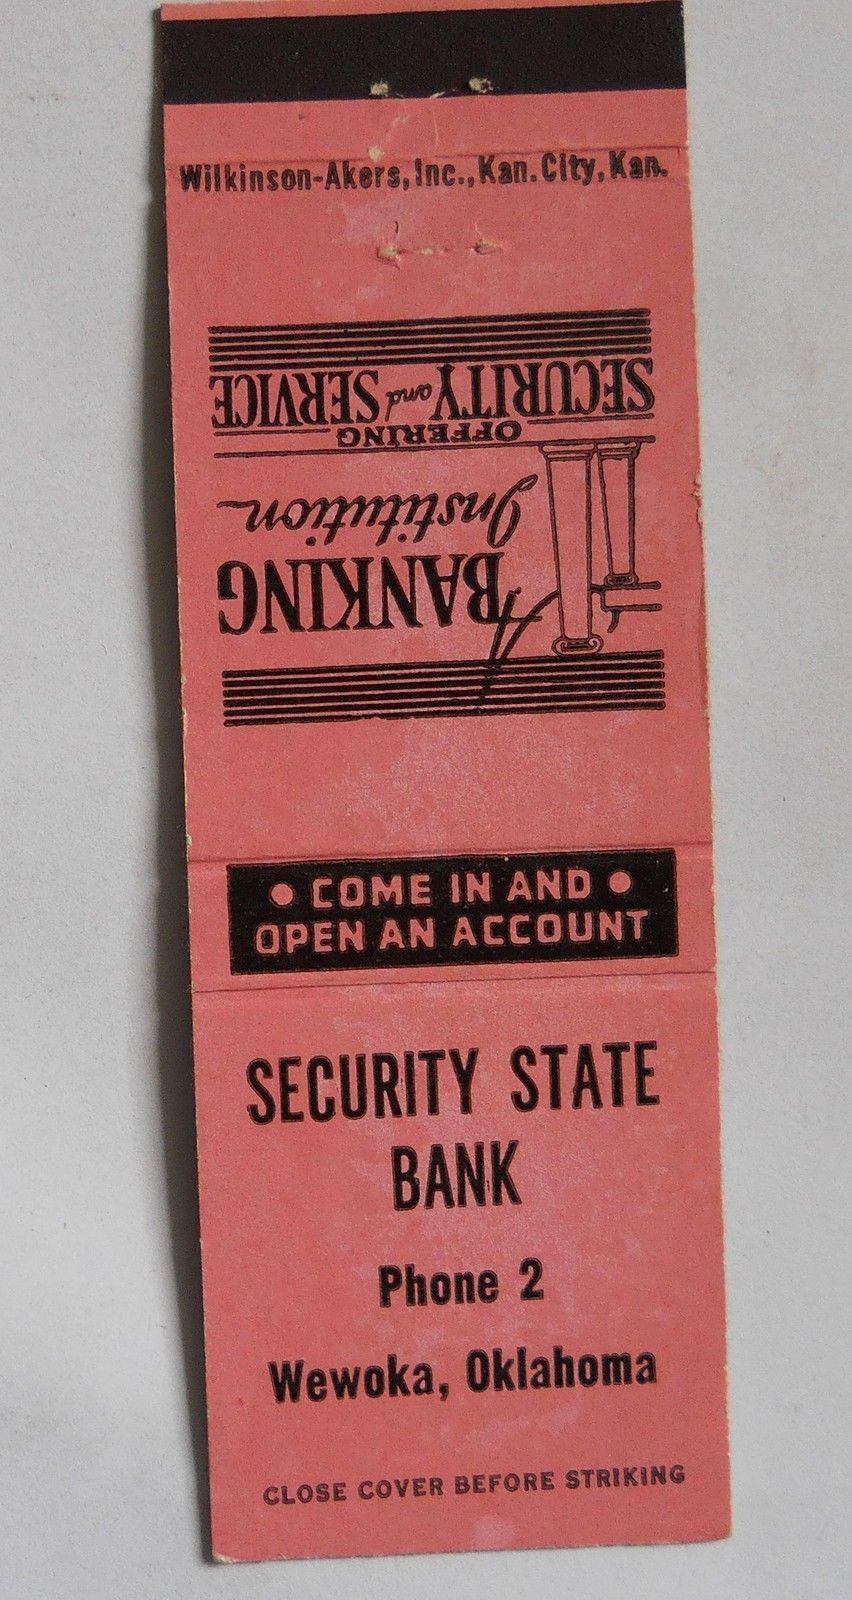 196 Security State Bank Wewoka Ok Wewoka Loan Company